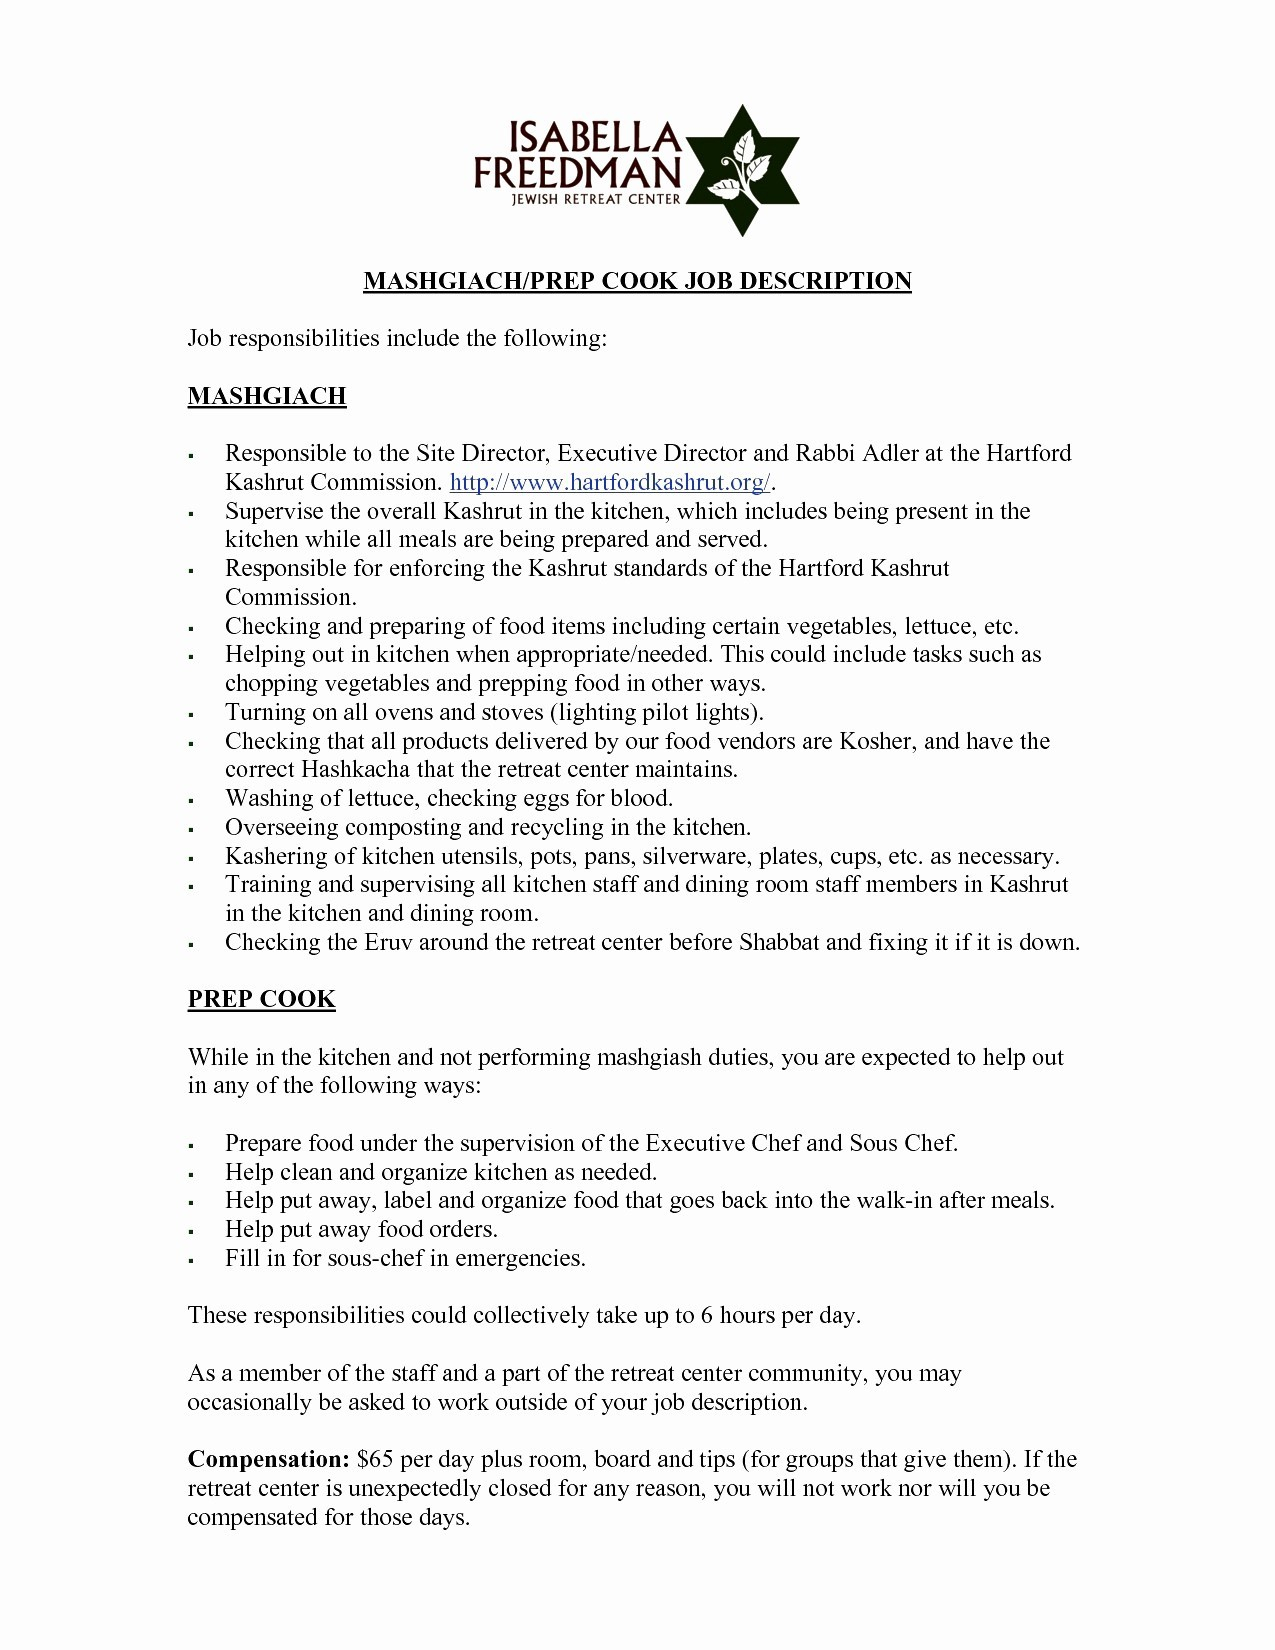 Google Letter Template - Free Resume Templates Google Docs New Luxury Cover Letter Template